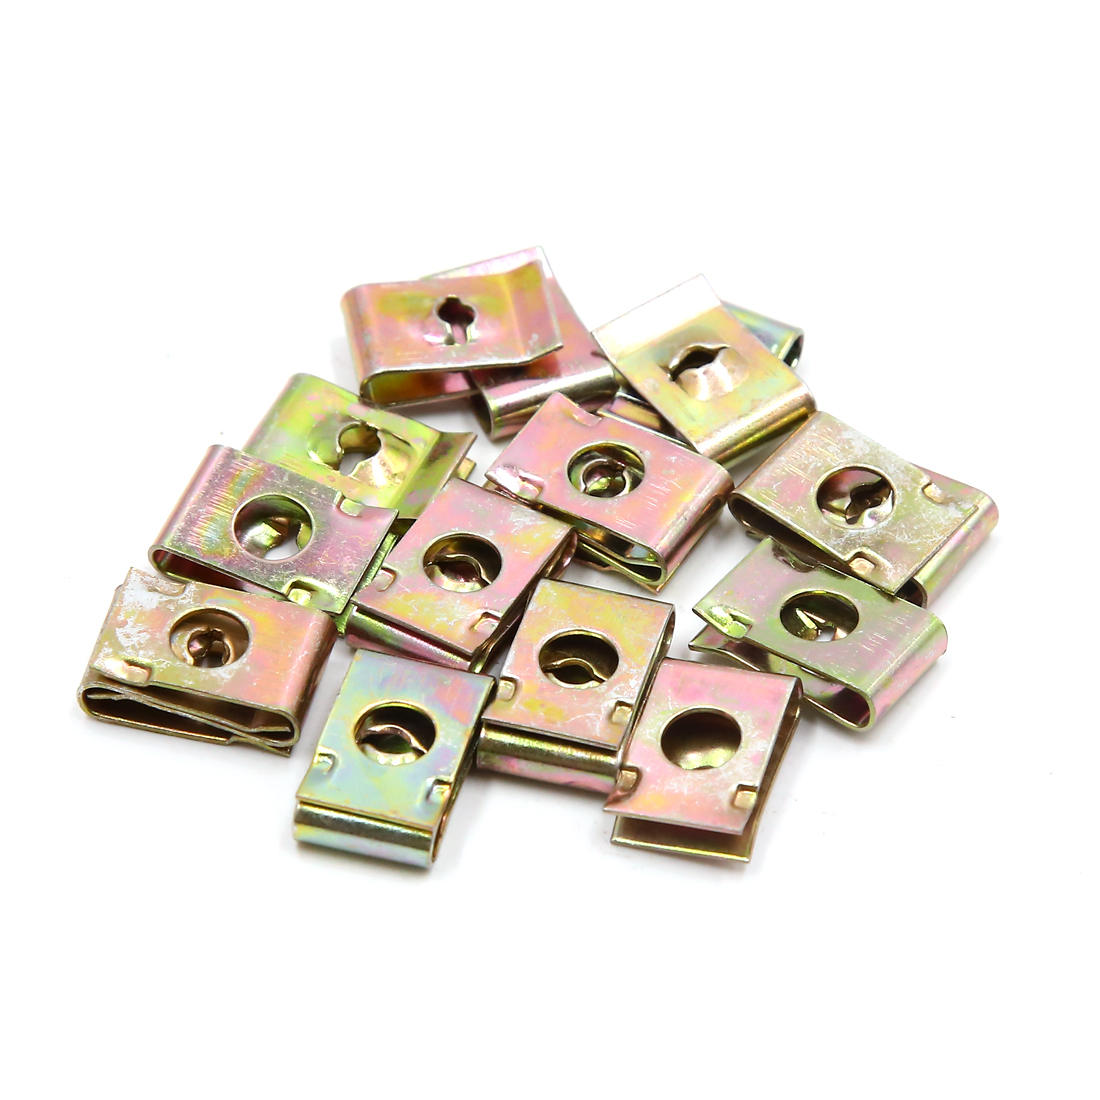 20Pcs Bronze Tone Metal Bolts U-Type Speed Fastener Clips for Motorcycle